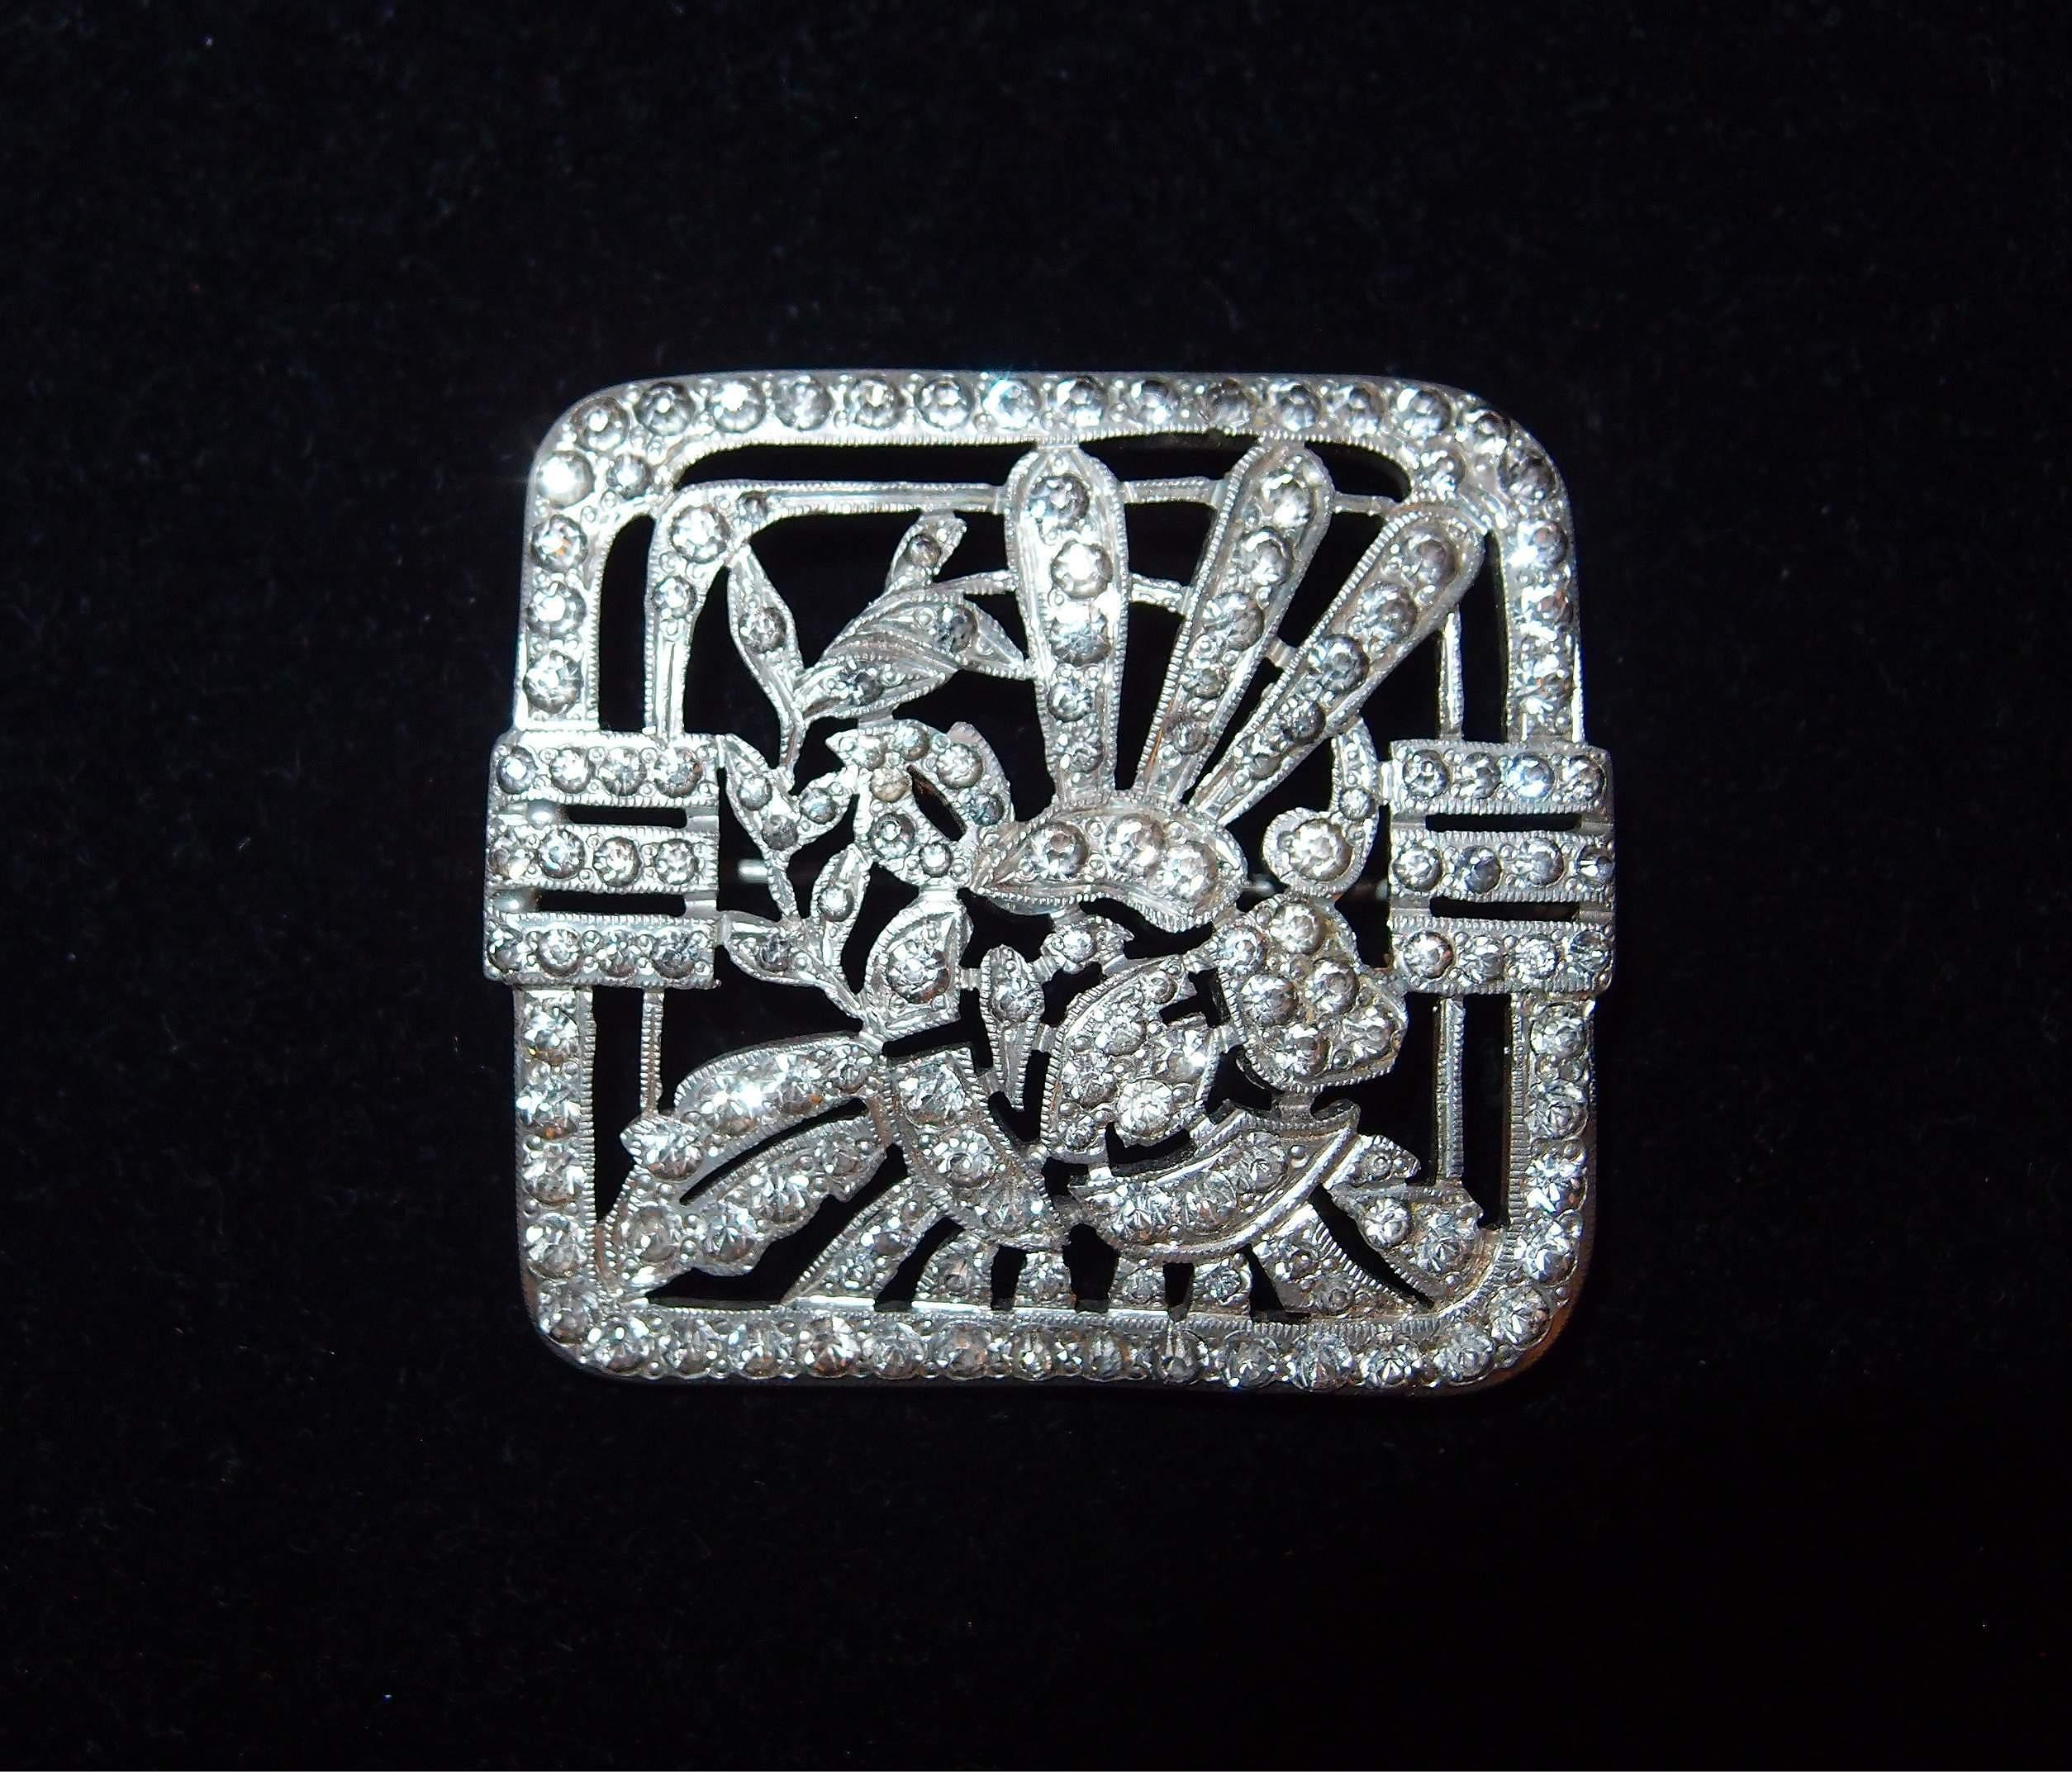 strong art deco motif paved square brooch from. Black Bedroom Furniture Sets. Home Design Ideas